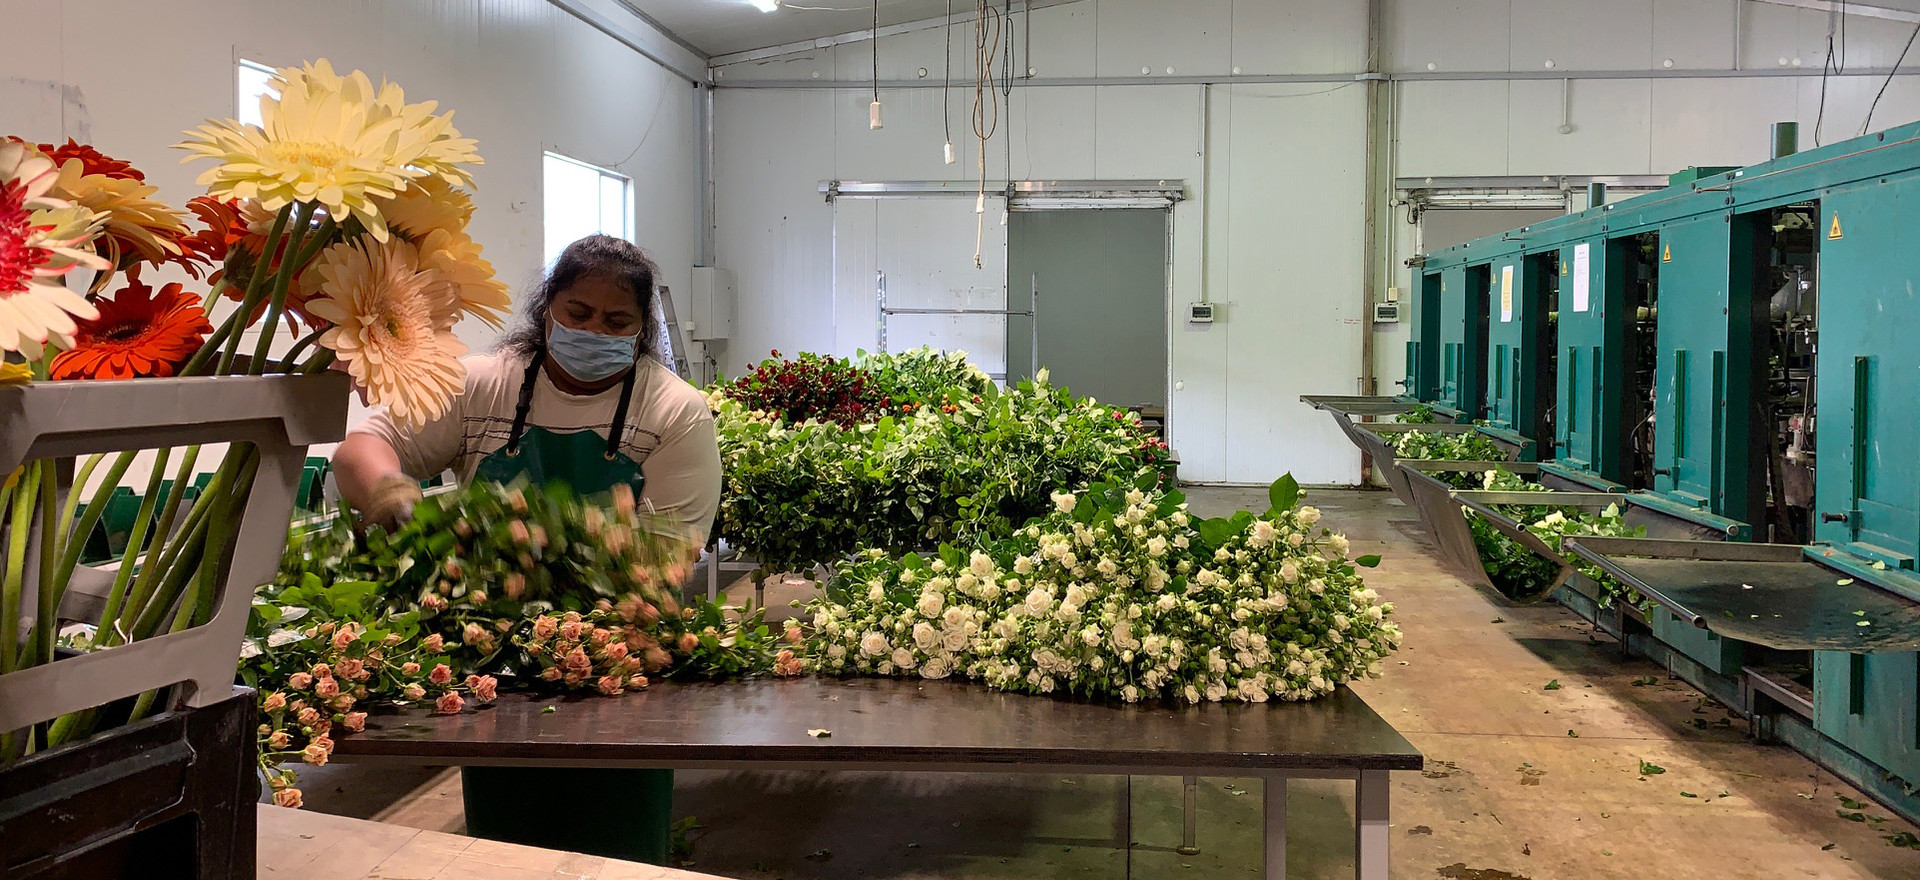 Taareta sorting flowers